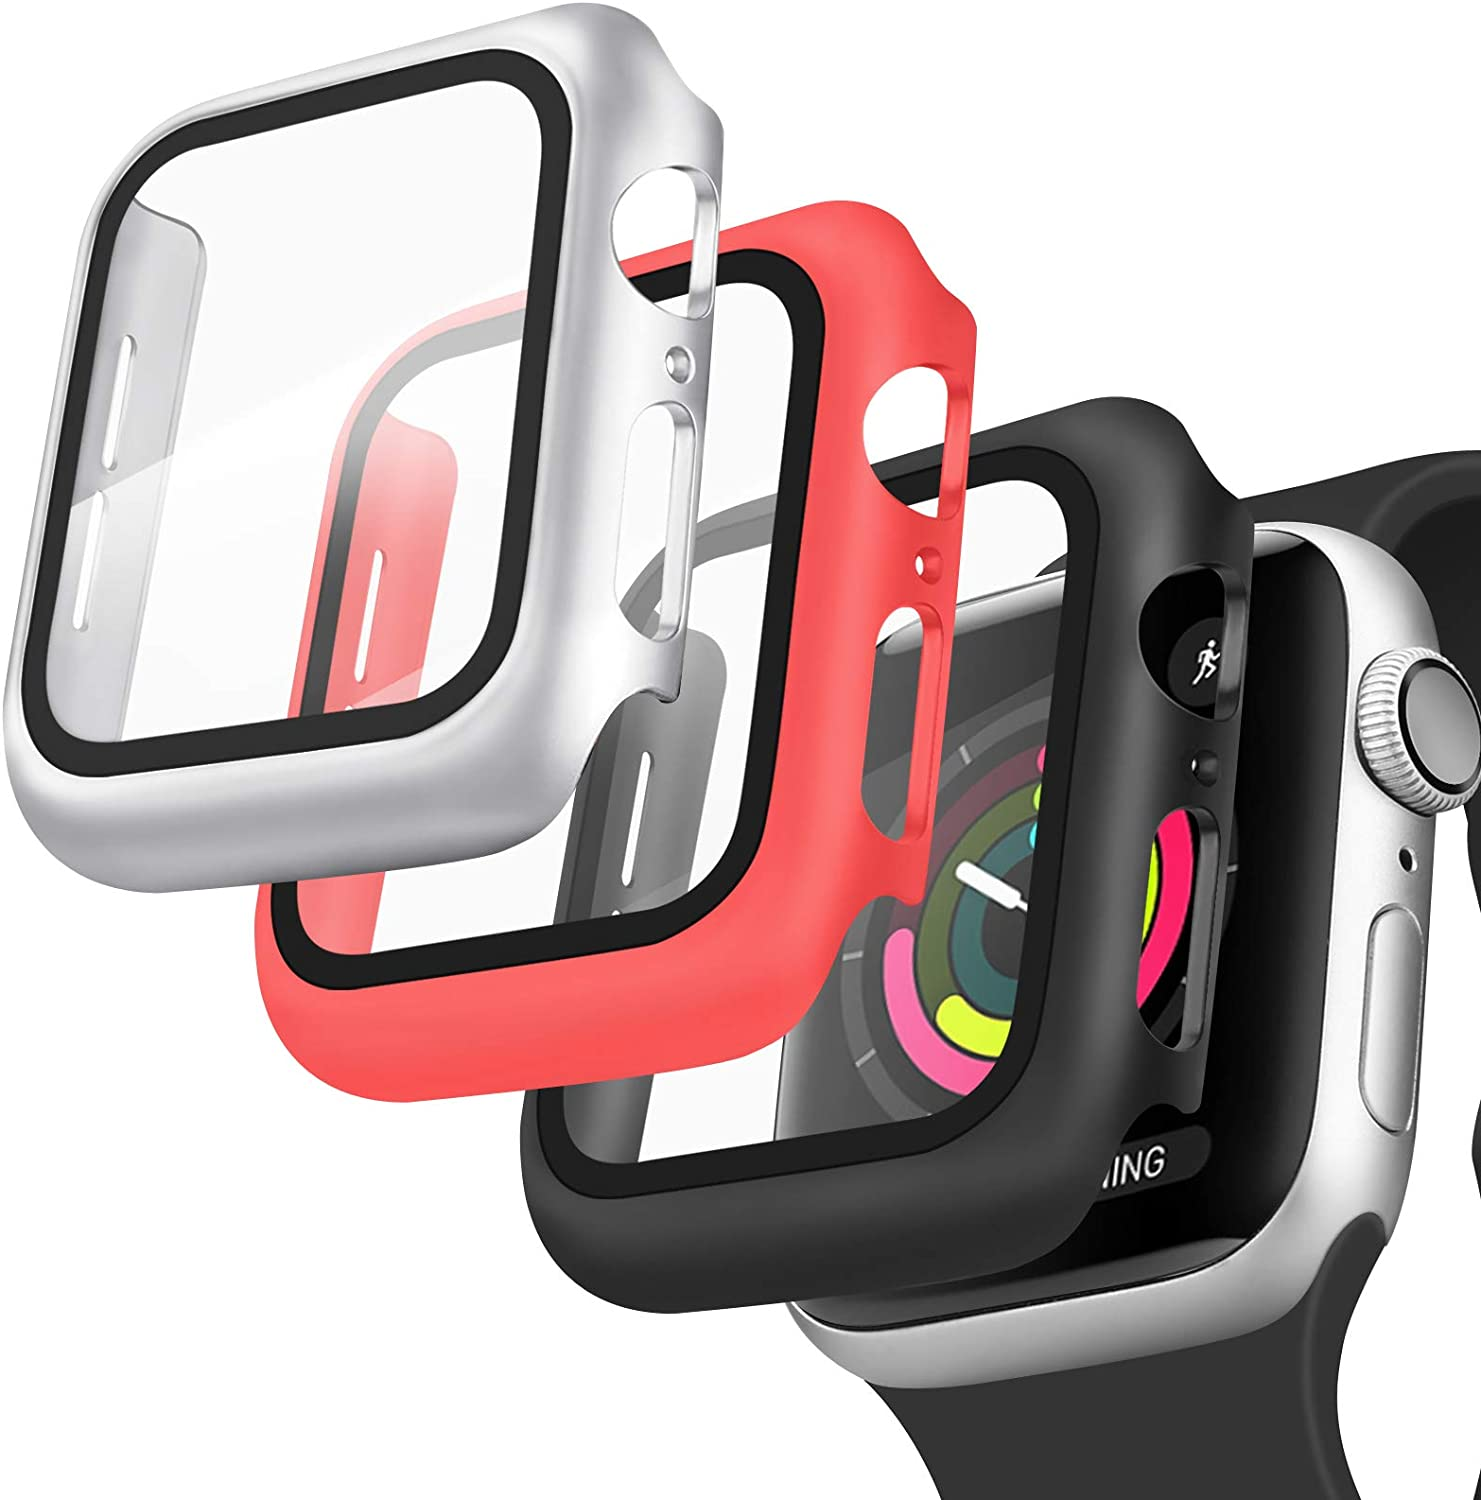 [3 Pack] Oumida 42mm 38mm Case Compatible with Apple Watch Series 3 2 1 for Women Men, iWatch Cases 42mm 38mm Hard Cover with Tempered Glass Screen Protector (Red, Black, Silver, 38mm)